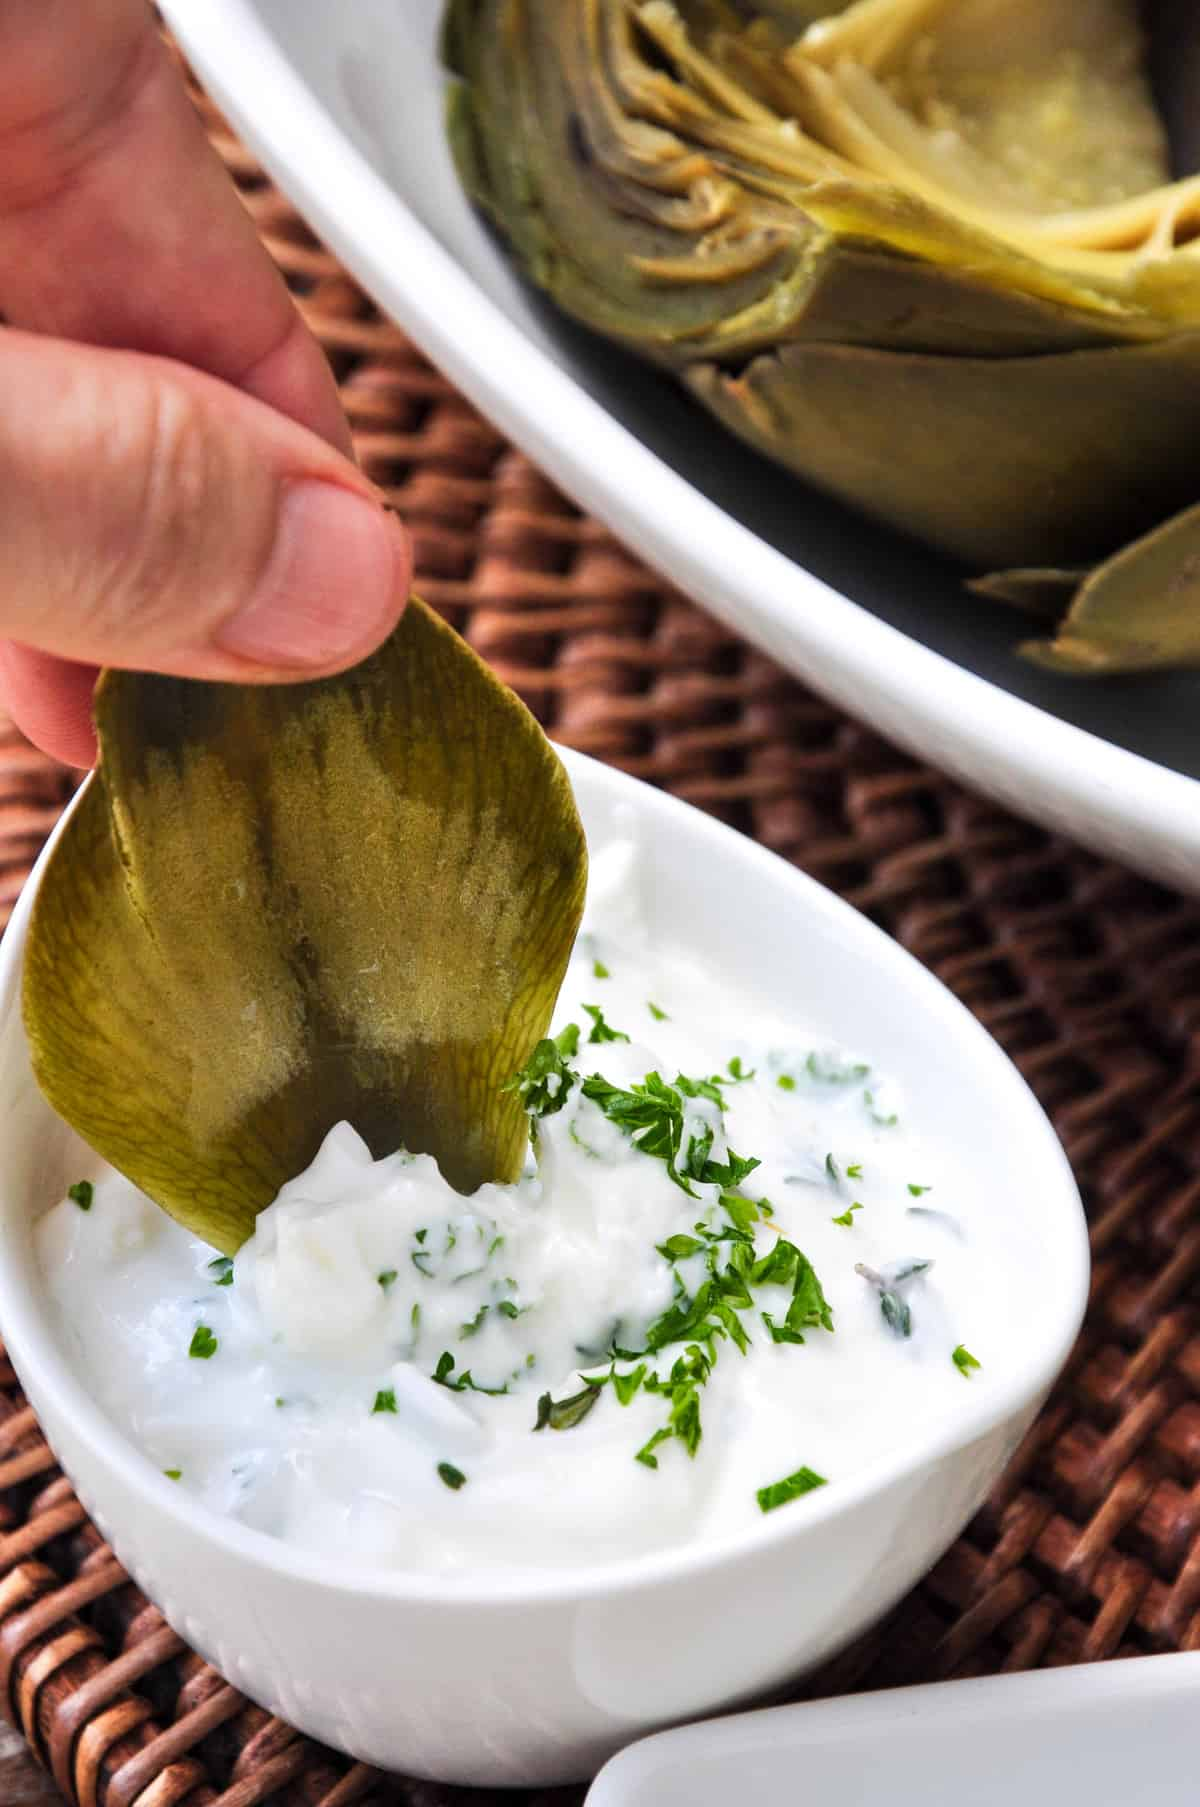 Greek yogurt based dip with fresh herbs and garlic